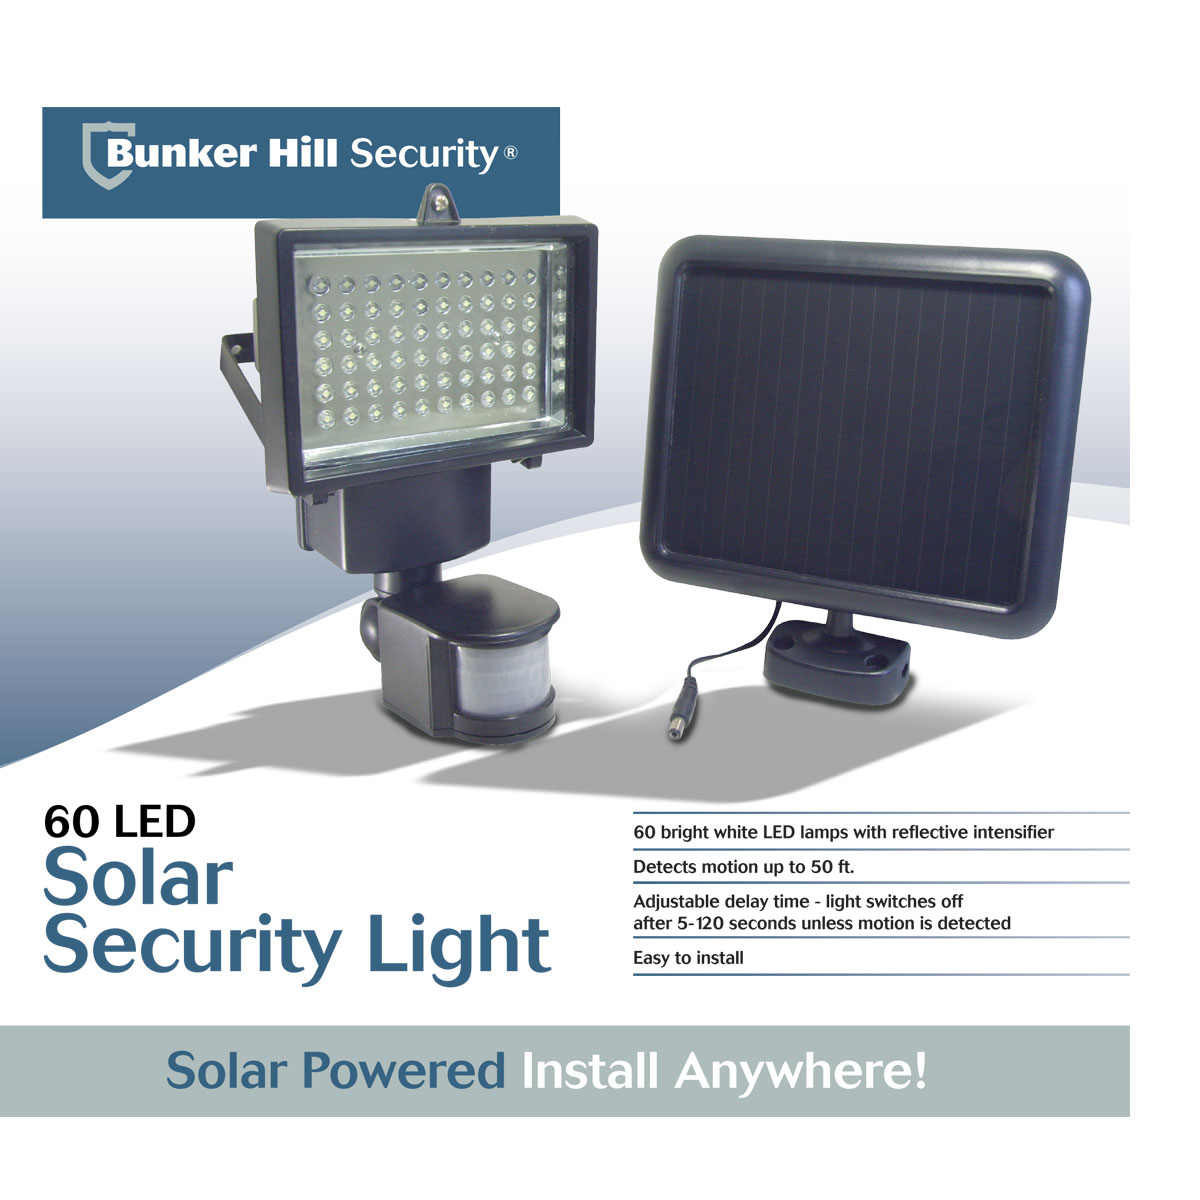 69643_zzz_alt2_500.jpg  sc 1 st  Harbor Freight & 60 LED Solar Security Light